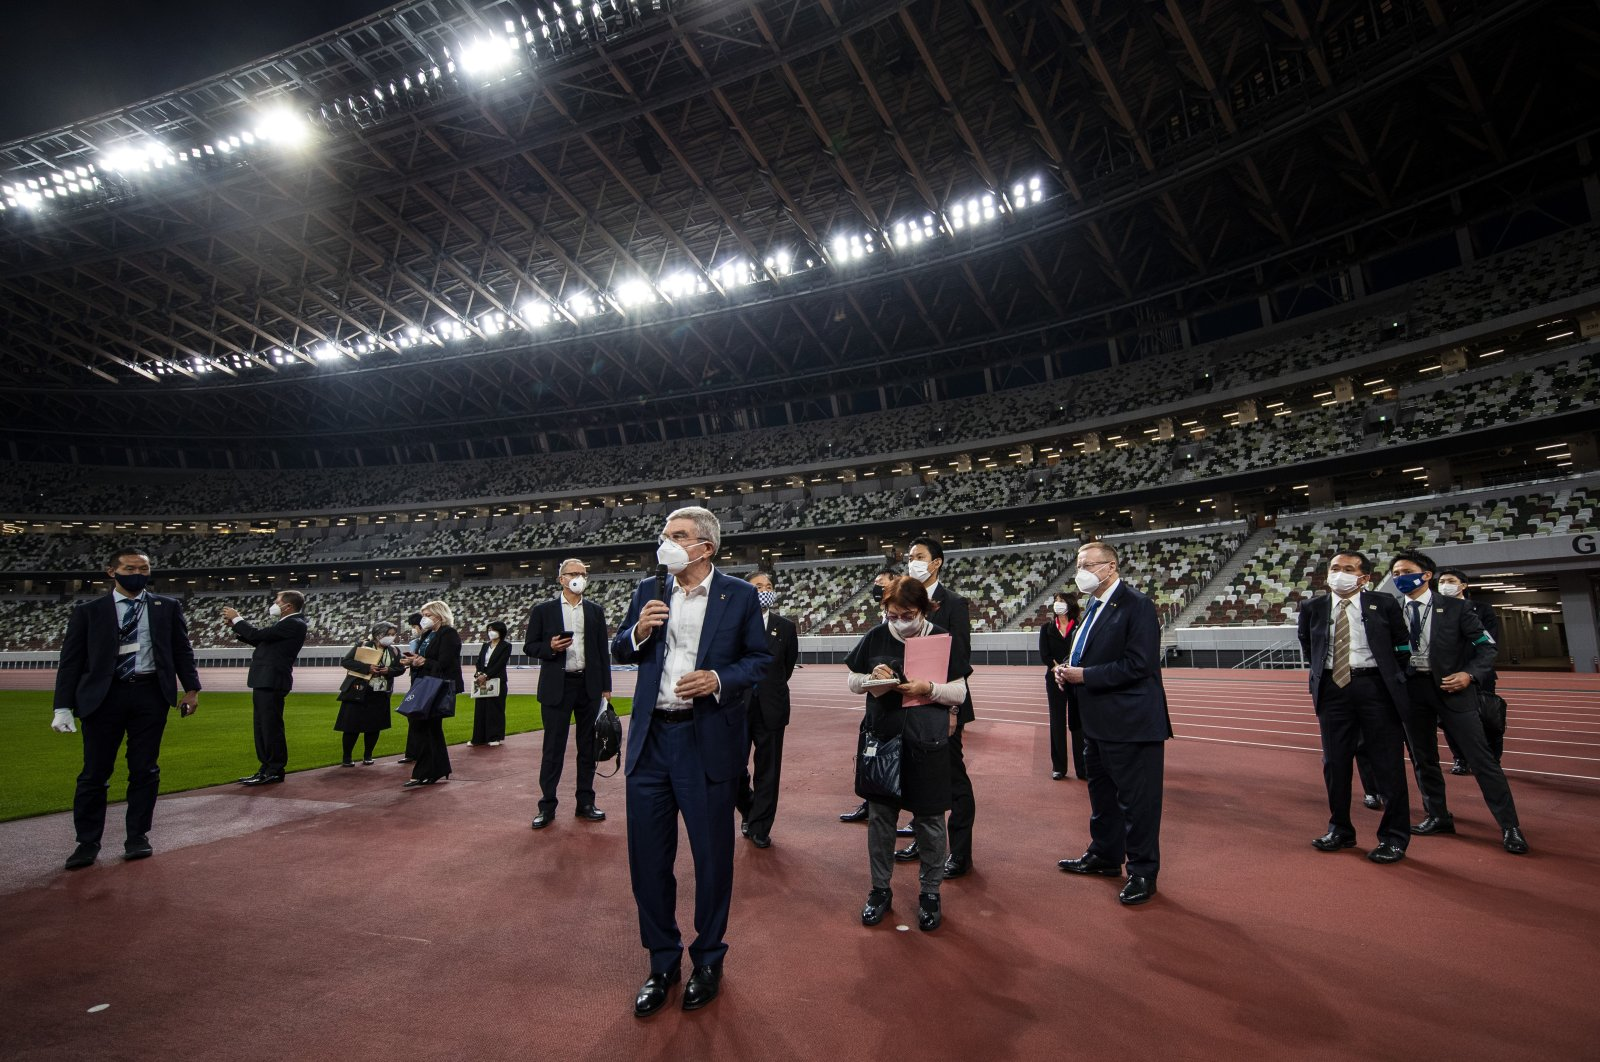 International Olympic Committee (IOC) President Thomas Bach (C) visits the National Stadium, the main venue for the 2020 Olympics, in Tokyo, Japan, Nov. 17, 2020. (AP Photo)